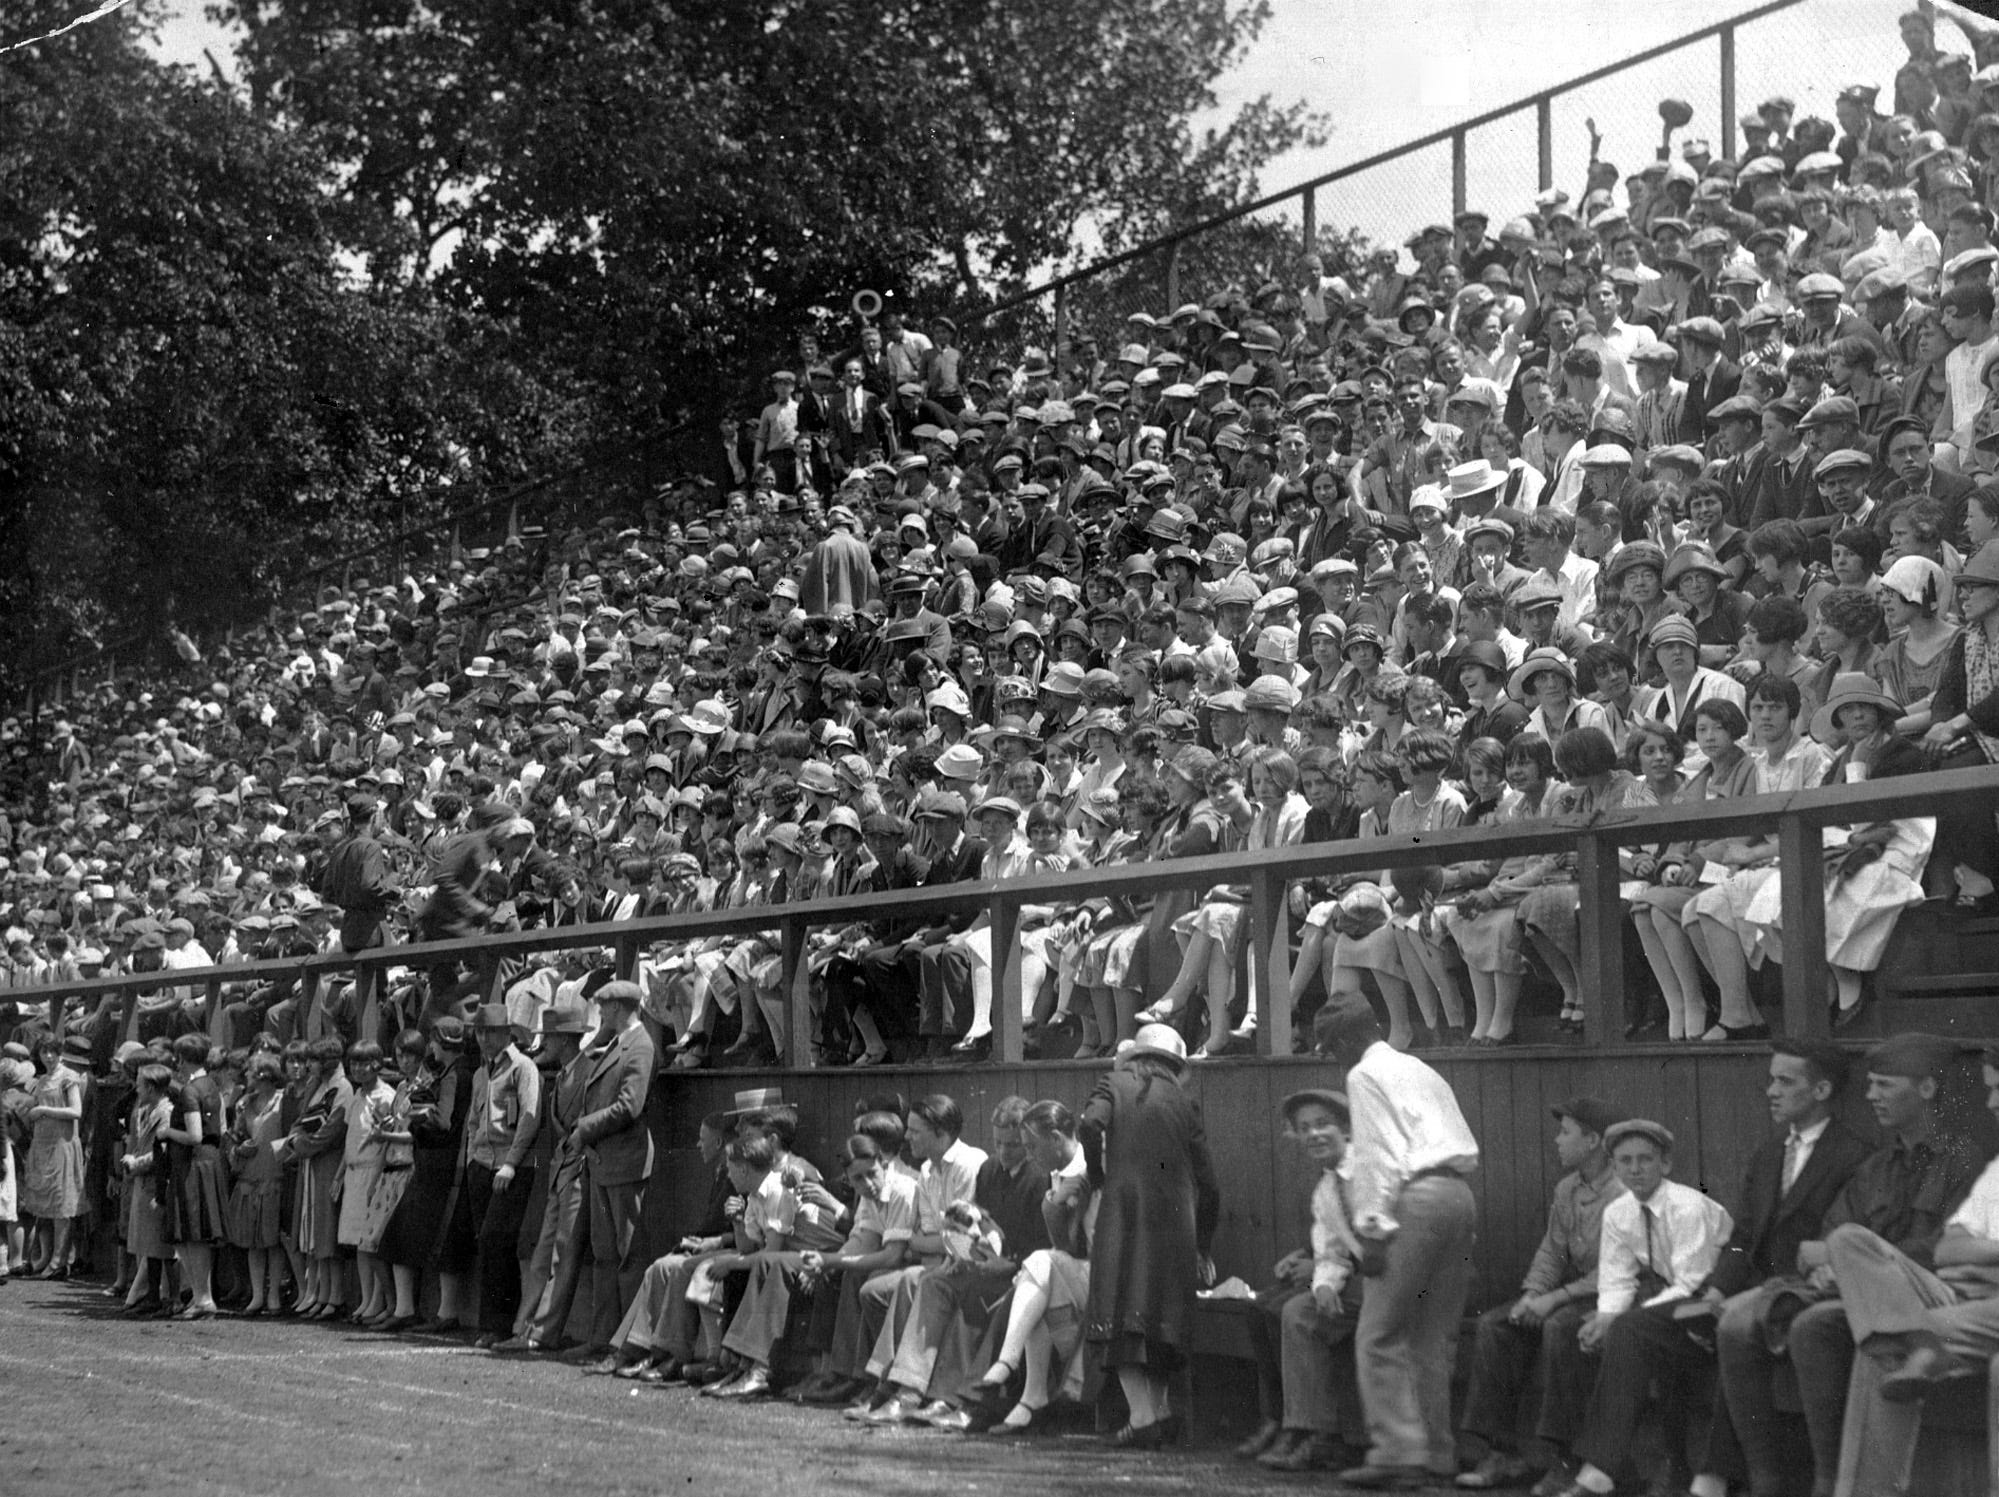 A track meet in 1926 attracted large crowds to Arsenal Technical High School. Opened in 1912 (officially designated as the city's third high school in 1916) as a manual and technical training school, it expanded its curriculum during the 1920s and, by 1930, had 242 teachers and 6,000 students. State track meets were held at Tech beginning in 1922, but the meets moved to Butler University in 1937.